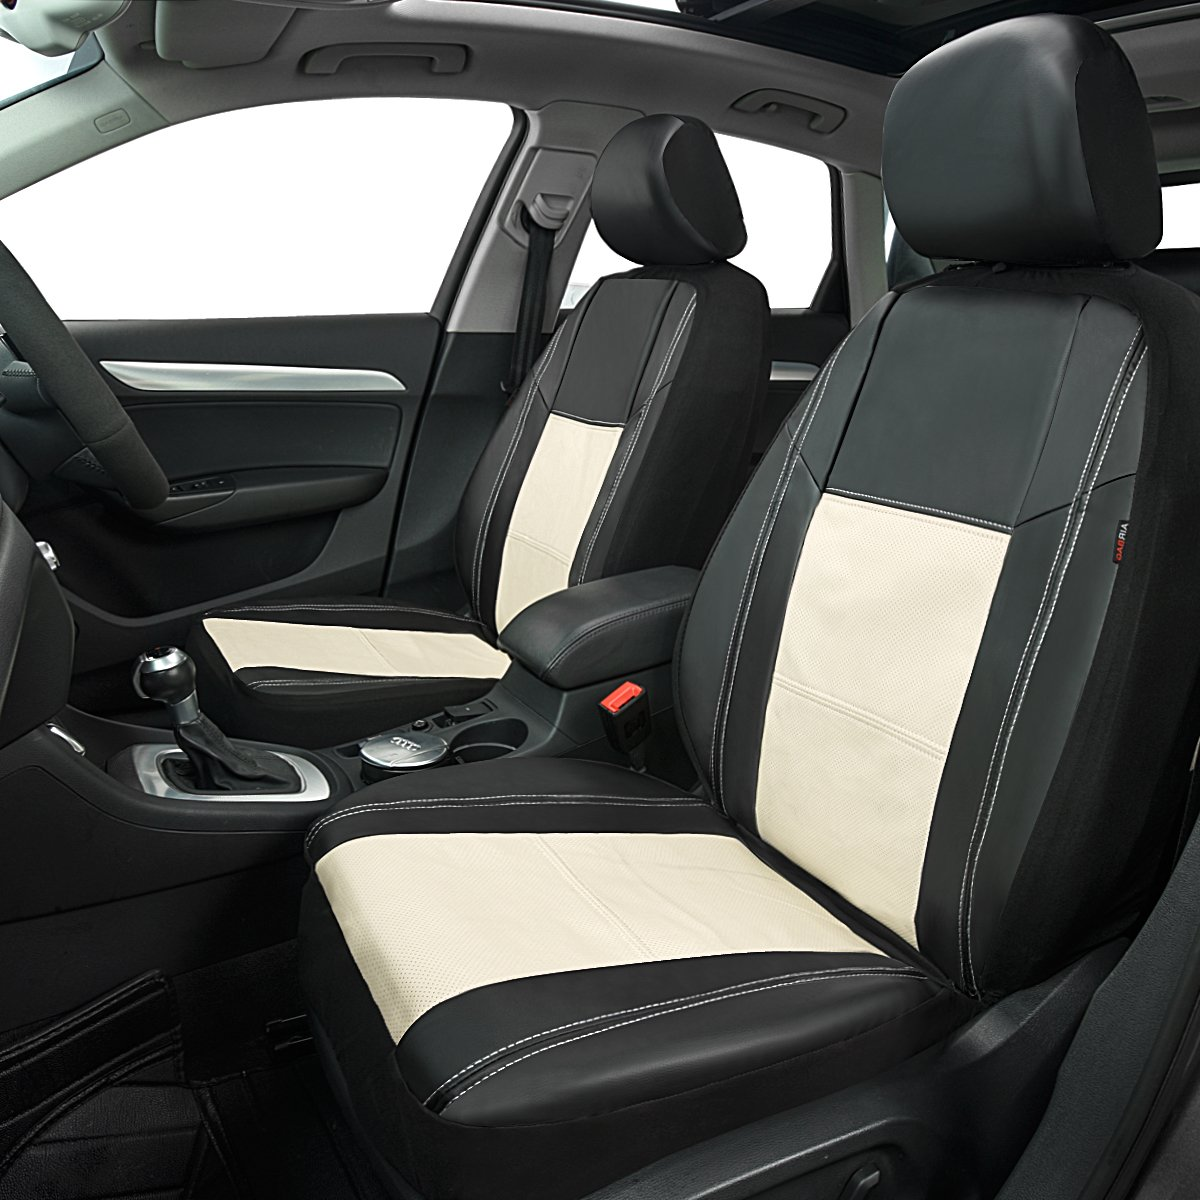 CAR PASS Skyline Pu Leather Car Seat Cover-Universal Fit for Cars,Suv,Vehicles 5mm Composite Sponge Inside,Airbag Compatible Red, 6pc